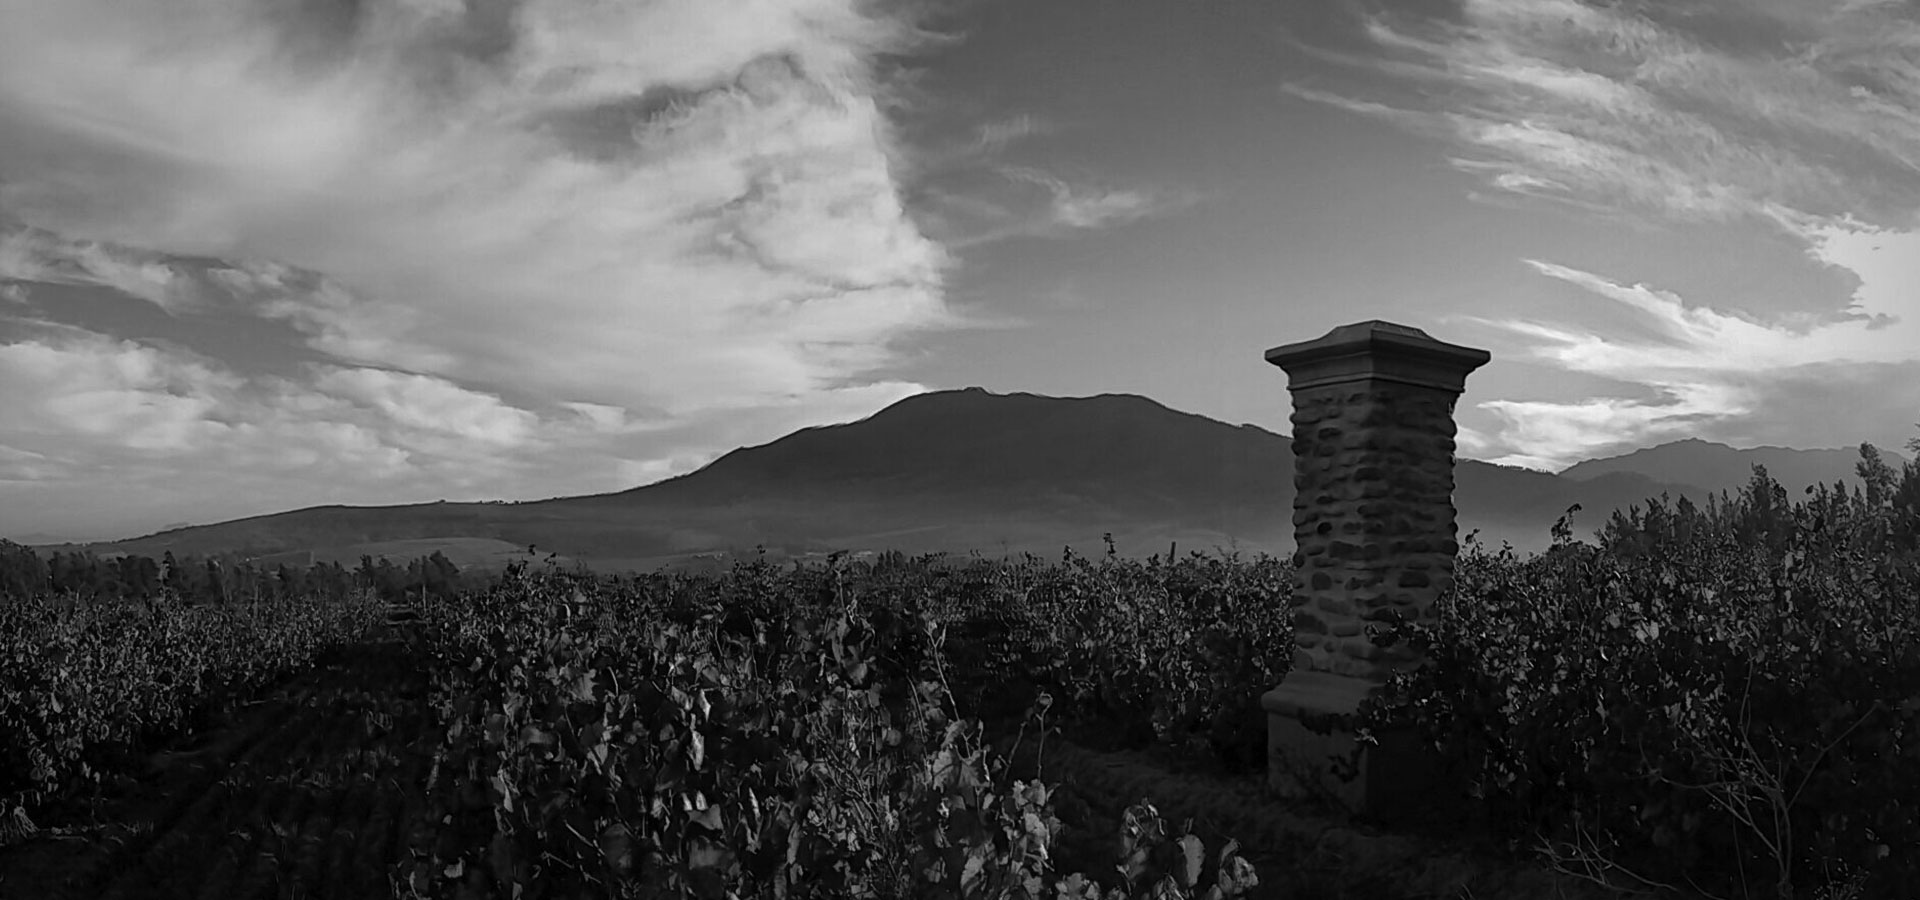 Vineyard in black and white